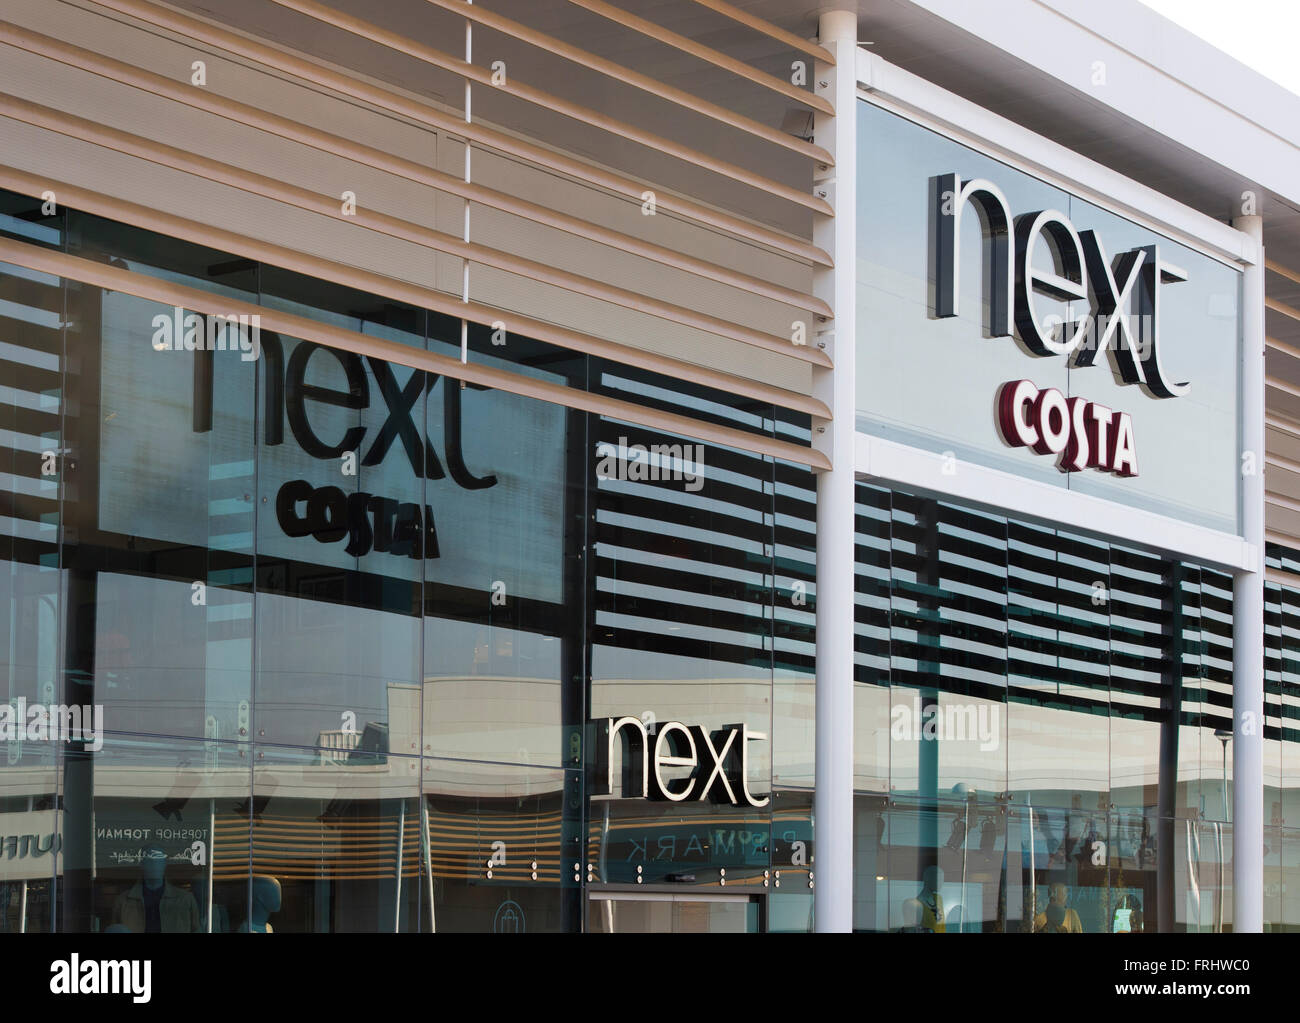 Next and Costa store signs. Banbury, Oxfordshire, England - Stock Image